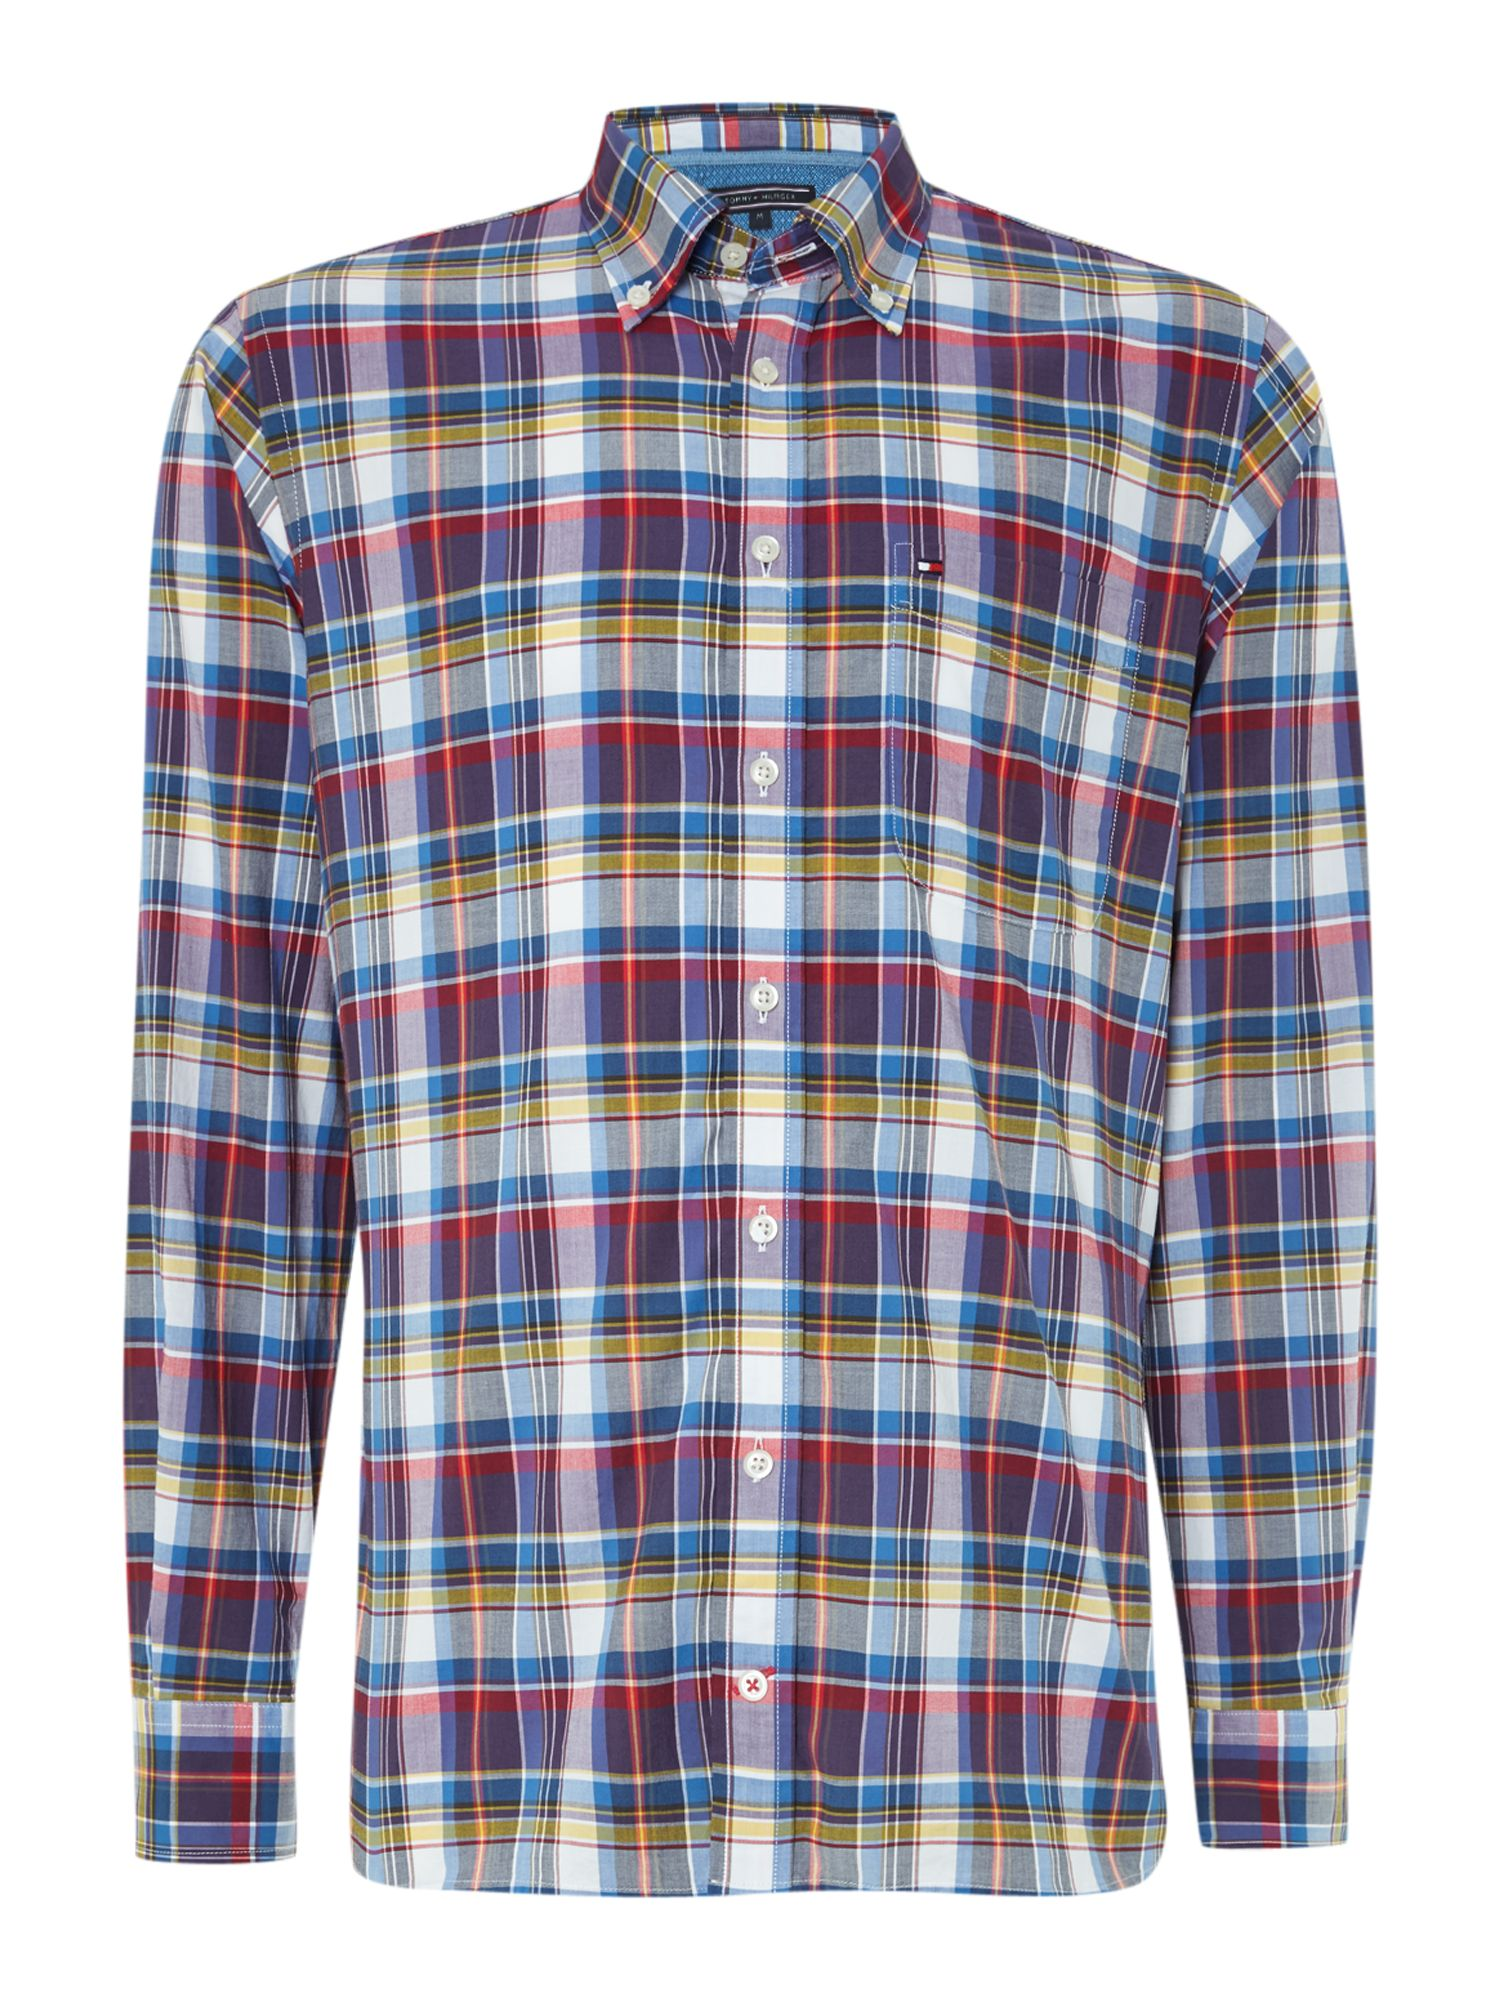 Falko check shirt